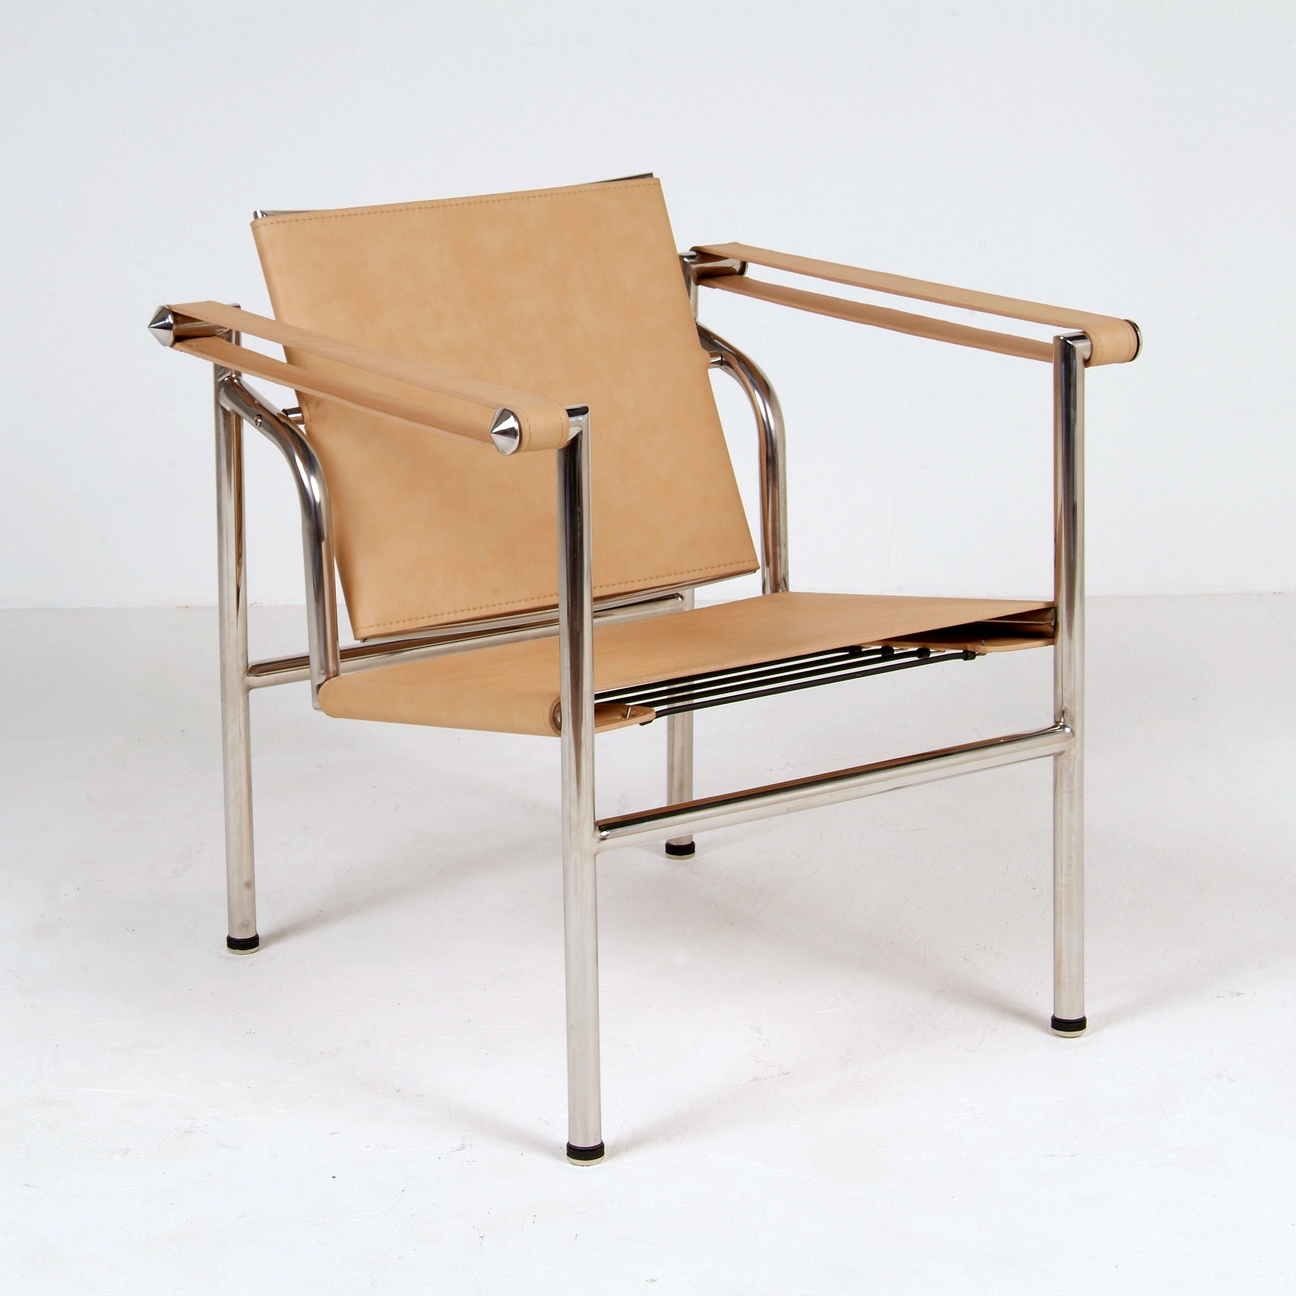 Modern sling chairs - Visit Corbusier Basculant Chair Product Page